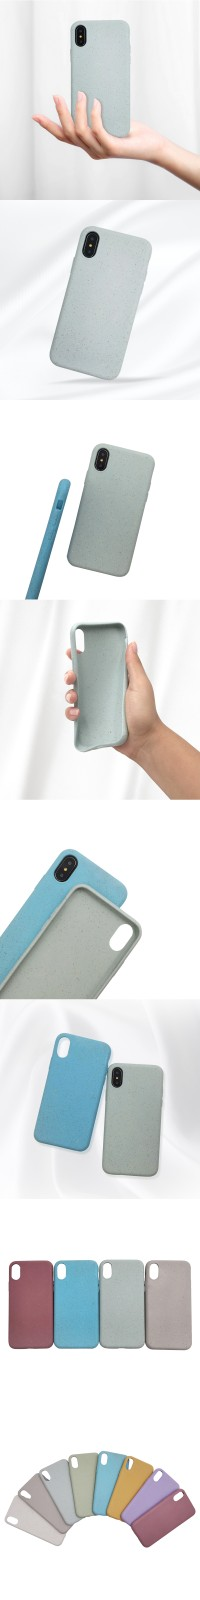 coated iphone case supplier manufacturer for commercial-1